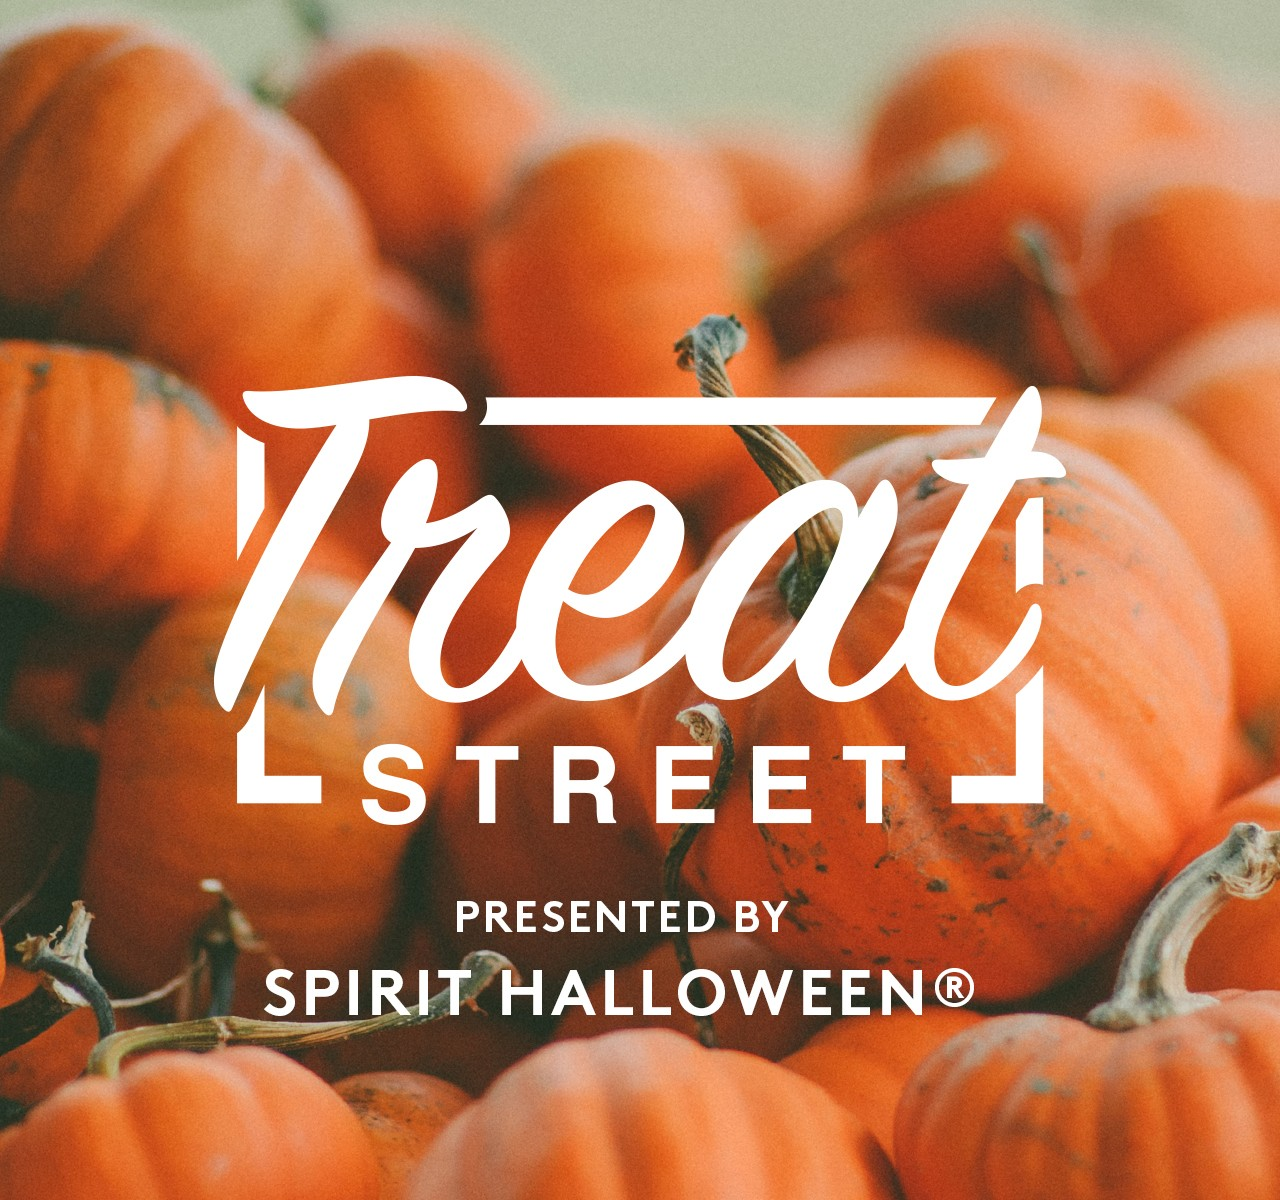 treat street presented by spirit halloween featuring